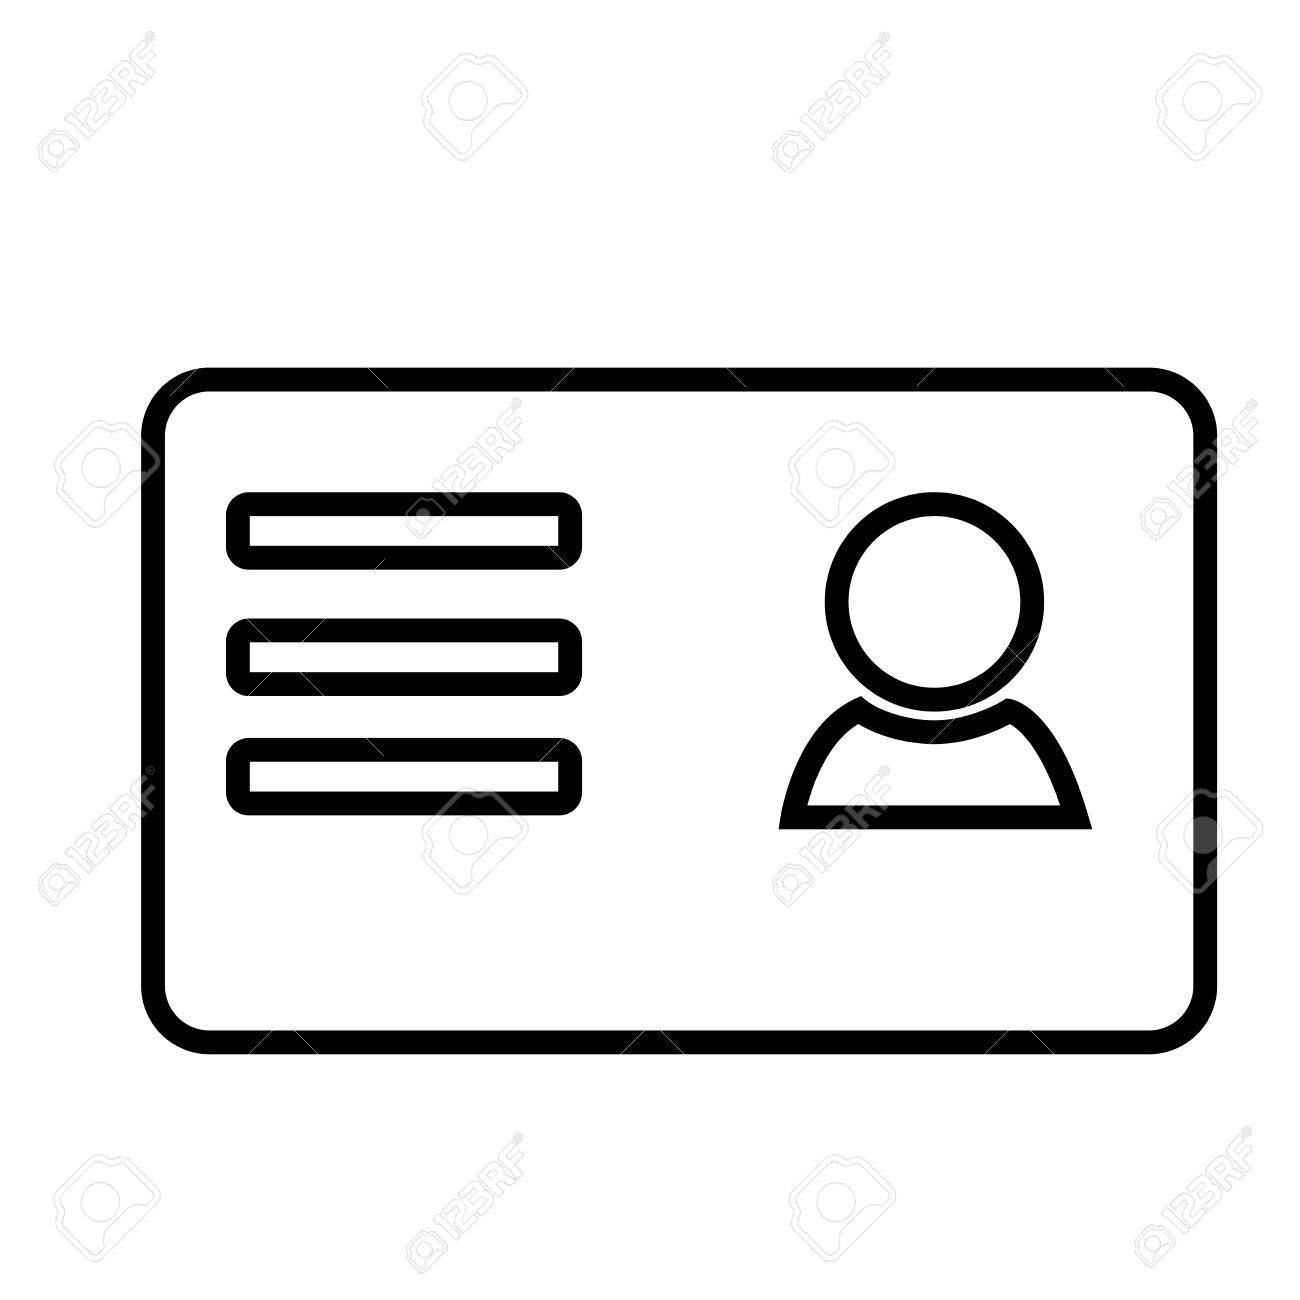 Business card icon royalty free cliparts vectors and stock business card icon stock vector 82177279 reheart Image collections